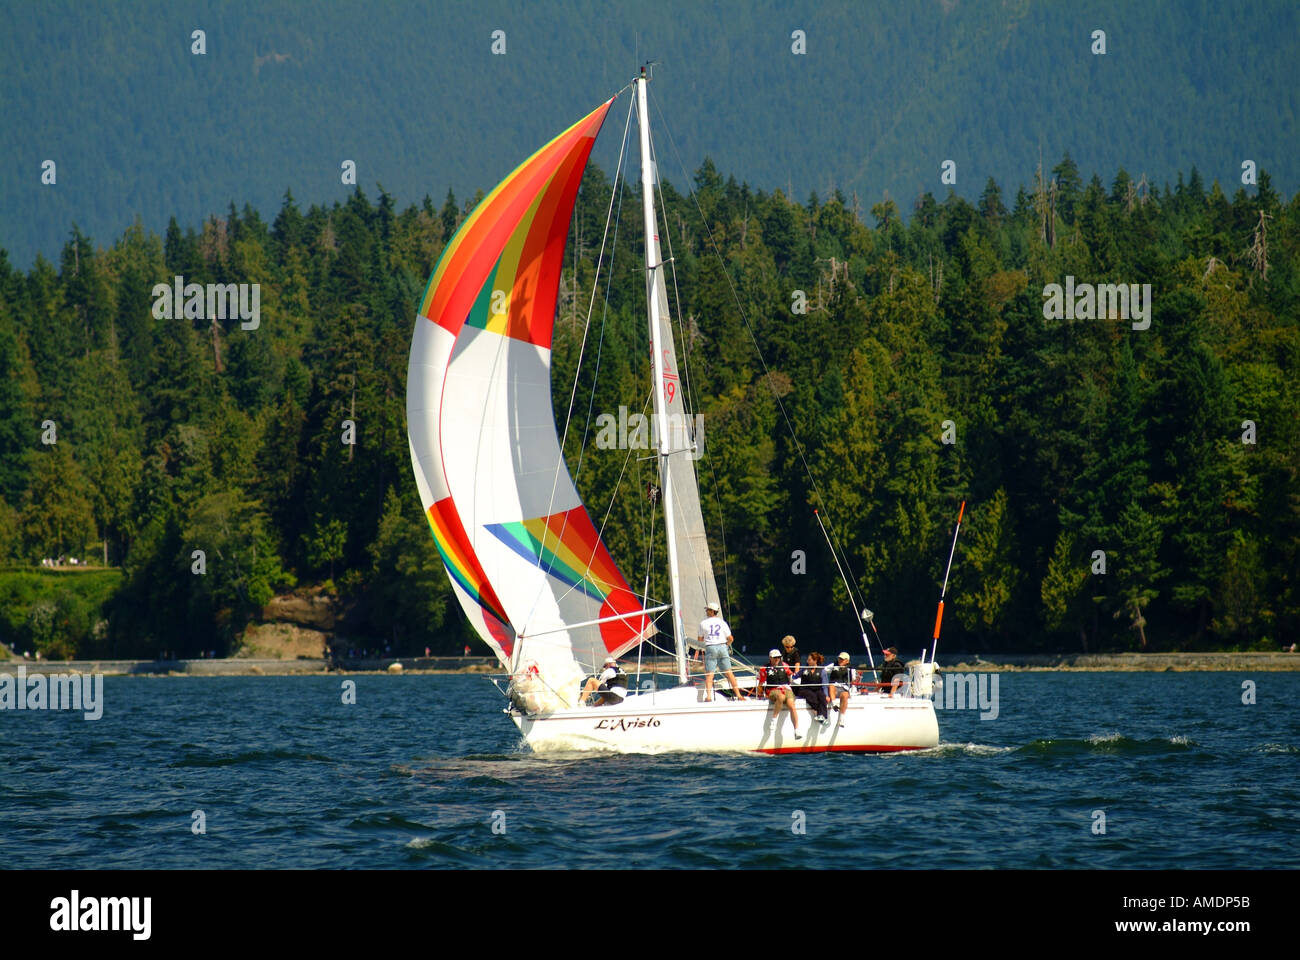 Yacht Spinnaker High Resolution Stock Photography And Images Alamy City mountains dock sail boat yacht